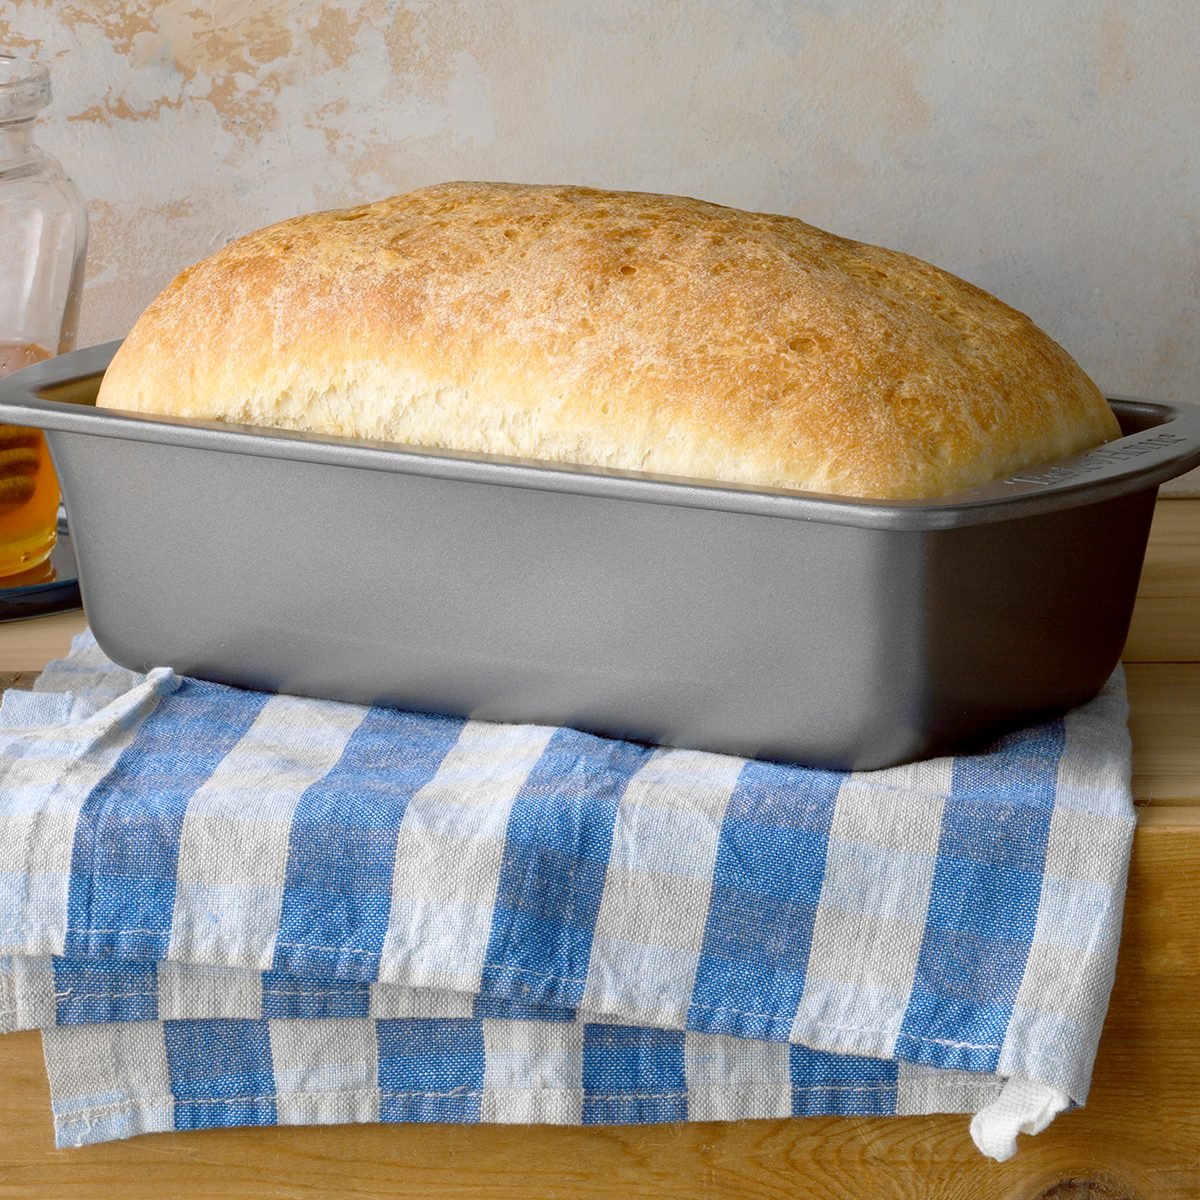 BAKING ON THE RISE Food Trends Report